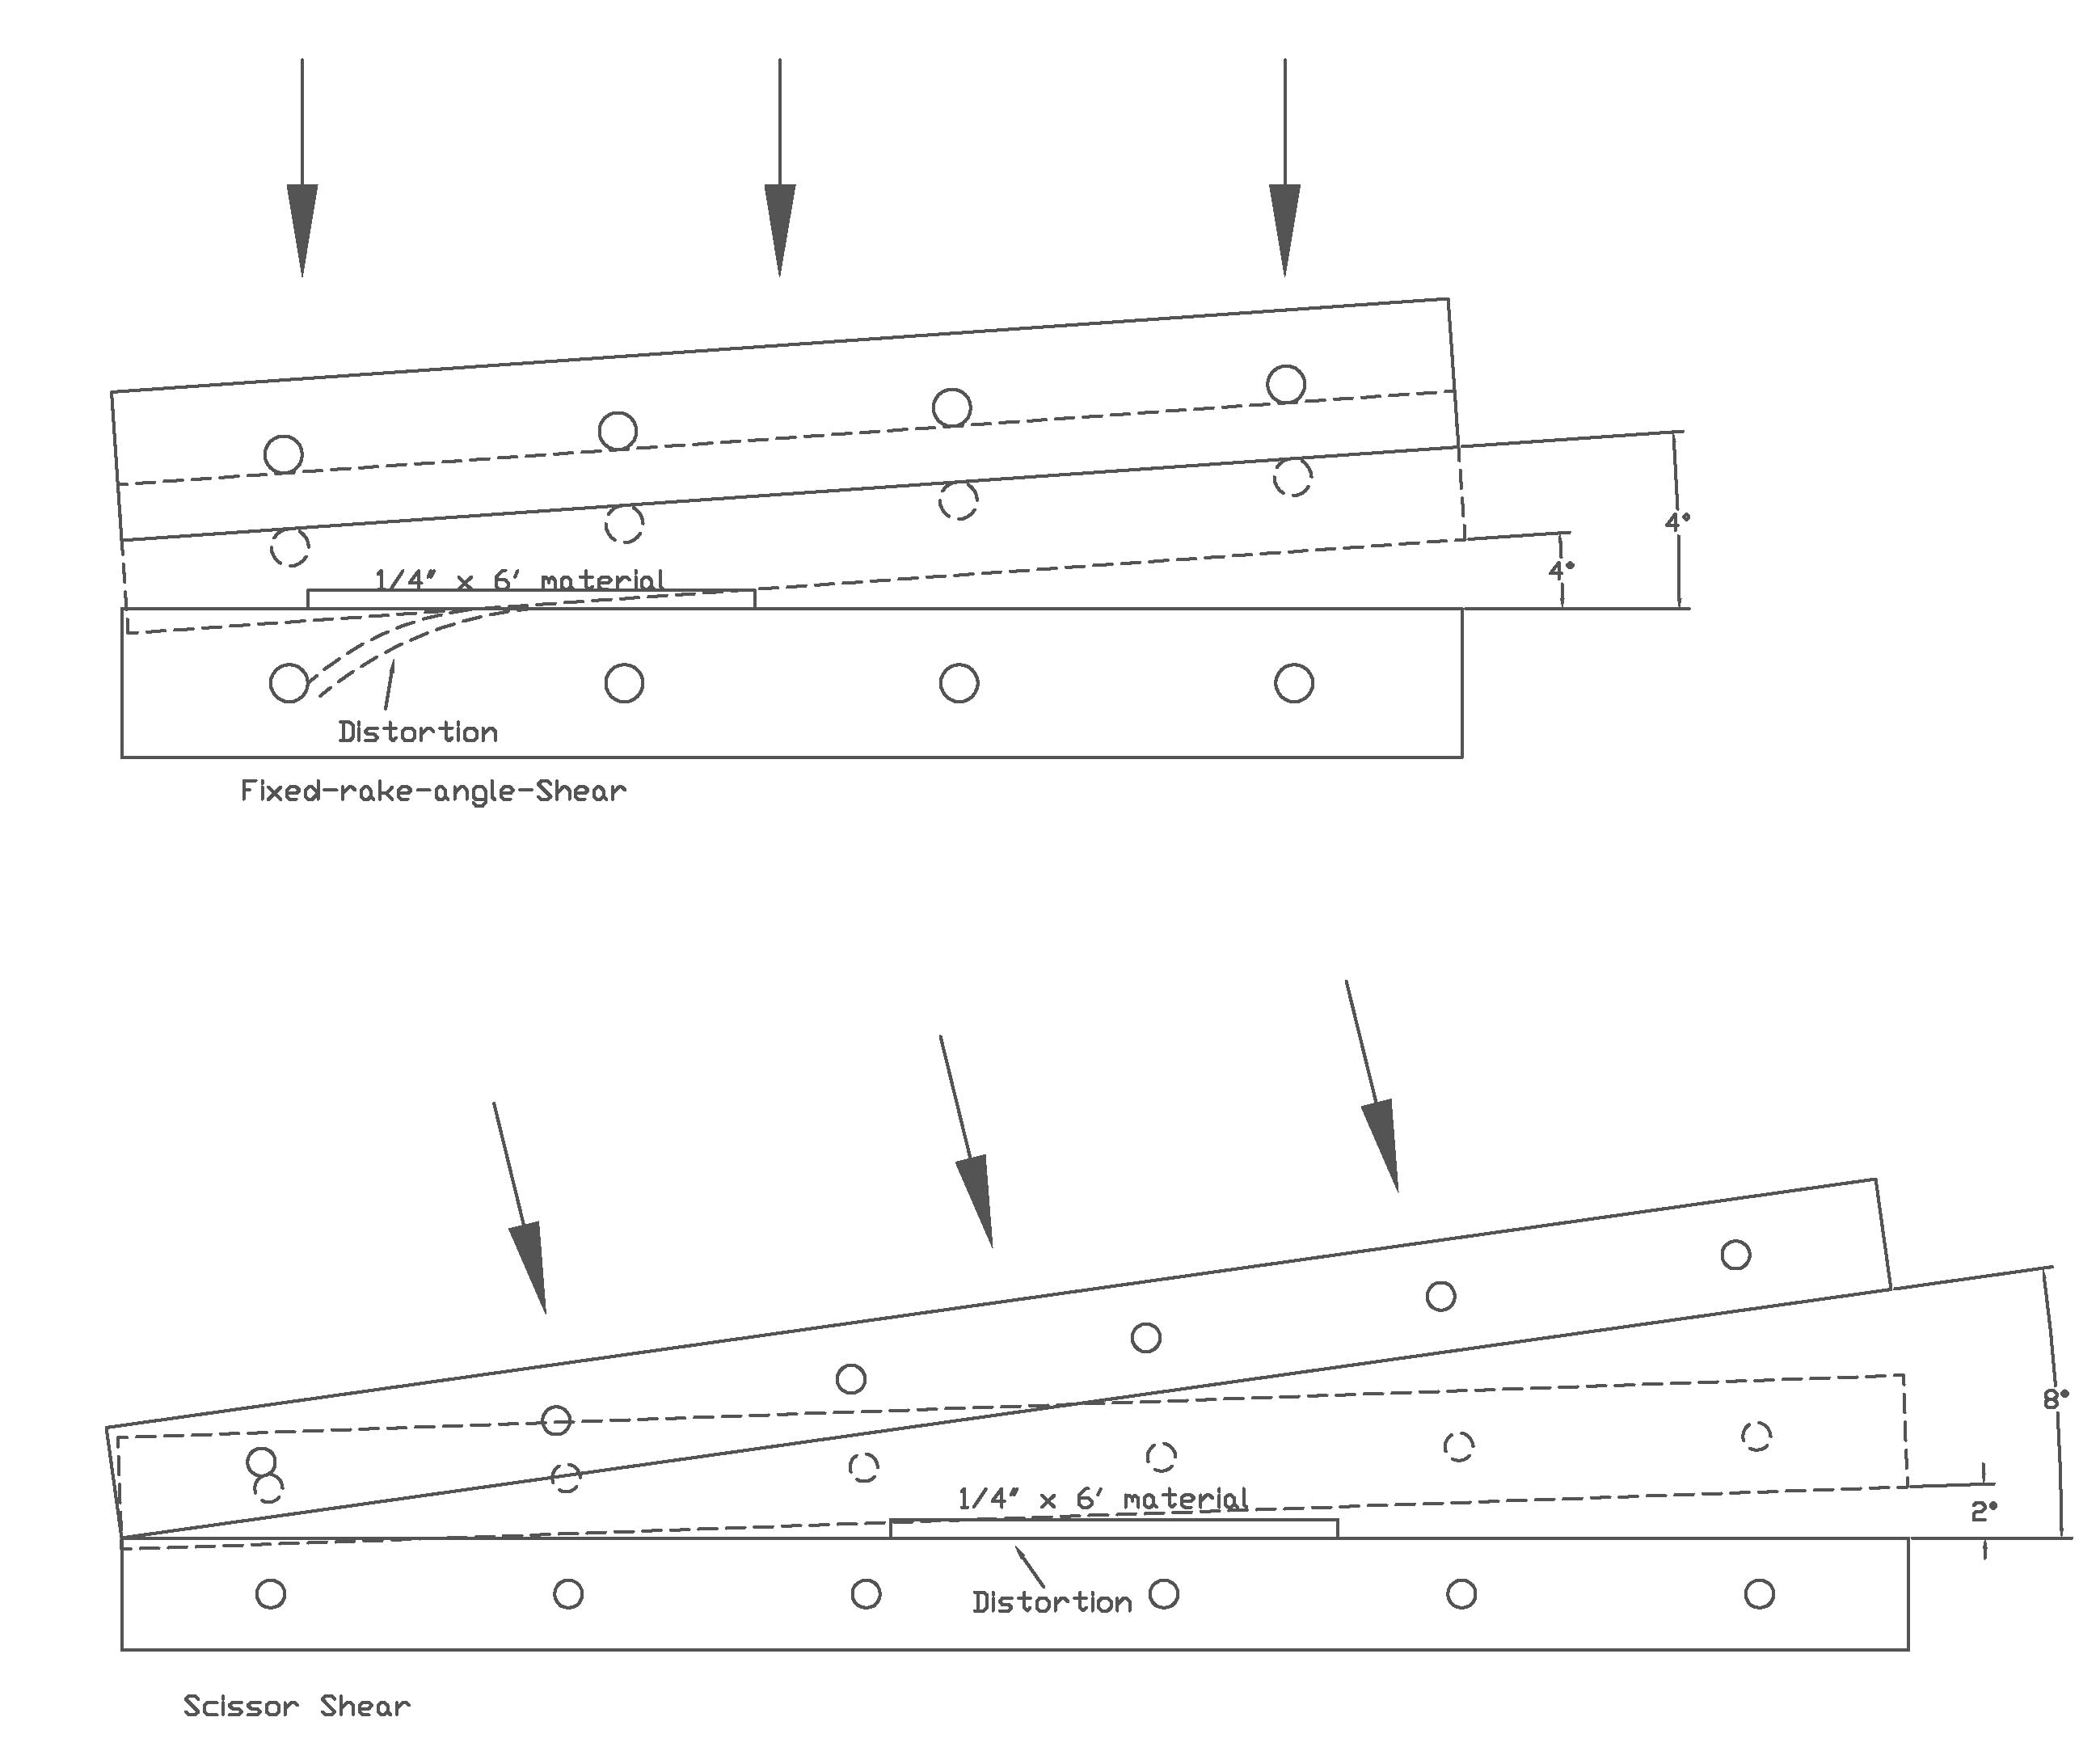 Factors To Consider When Selecting An Ironworker Plumbing Diagram Below Showing The Utilisation Of Enginedriven Figure 2 Main Differences Between Flat Bar Shear Stations Are Length And Approach Blade Metal Some Ironworkers Use A Guillotine